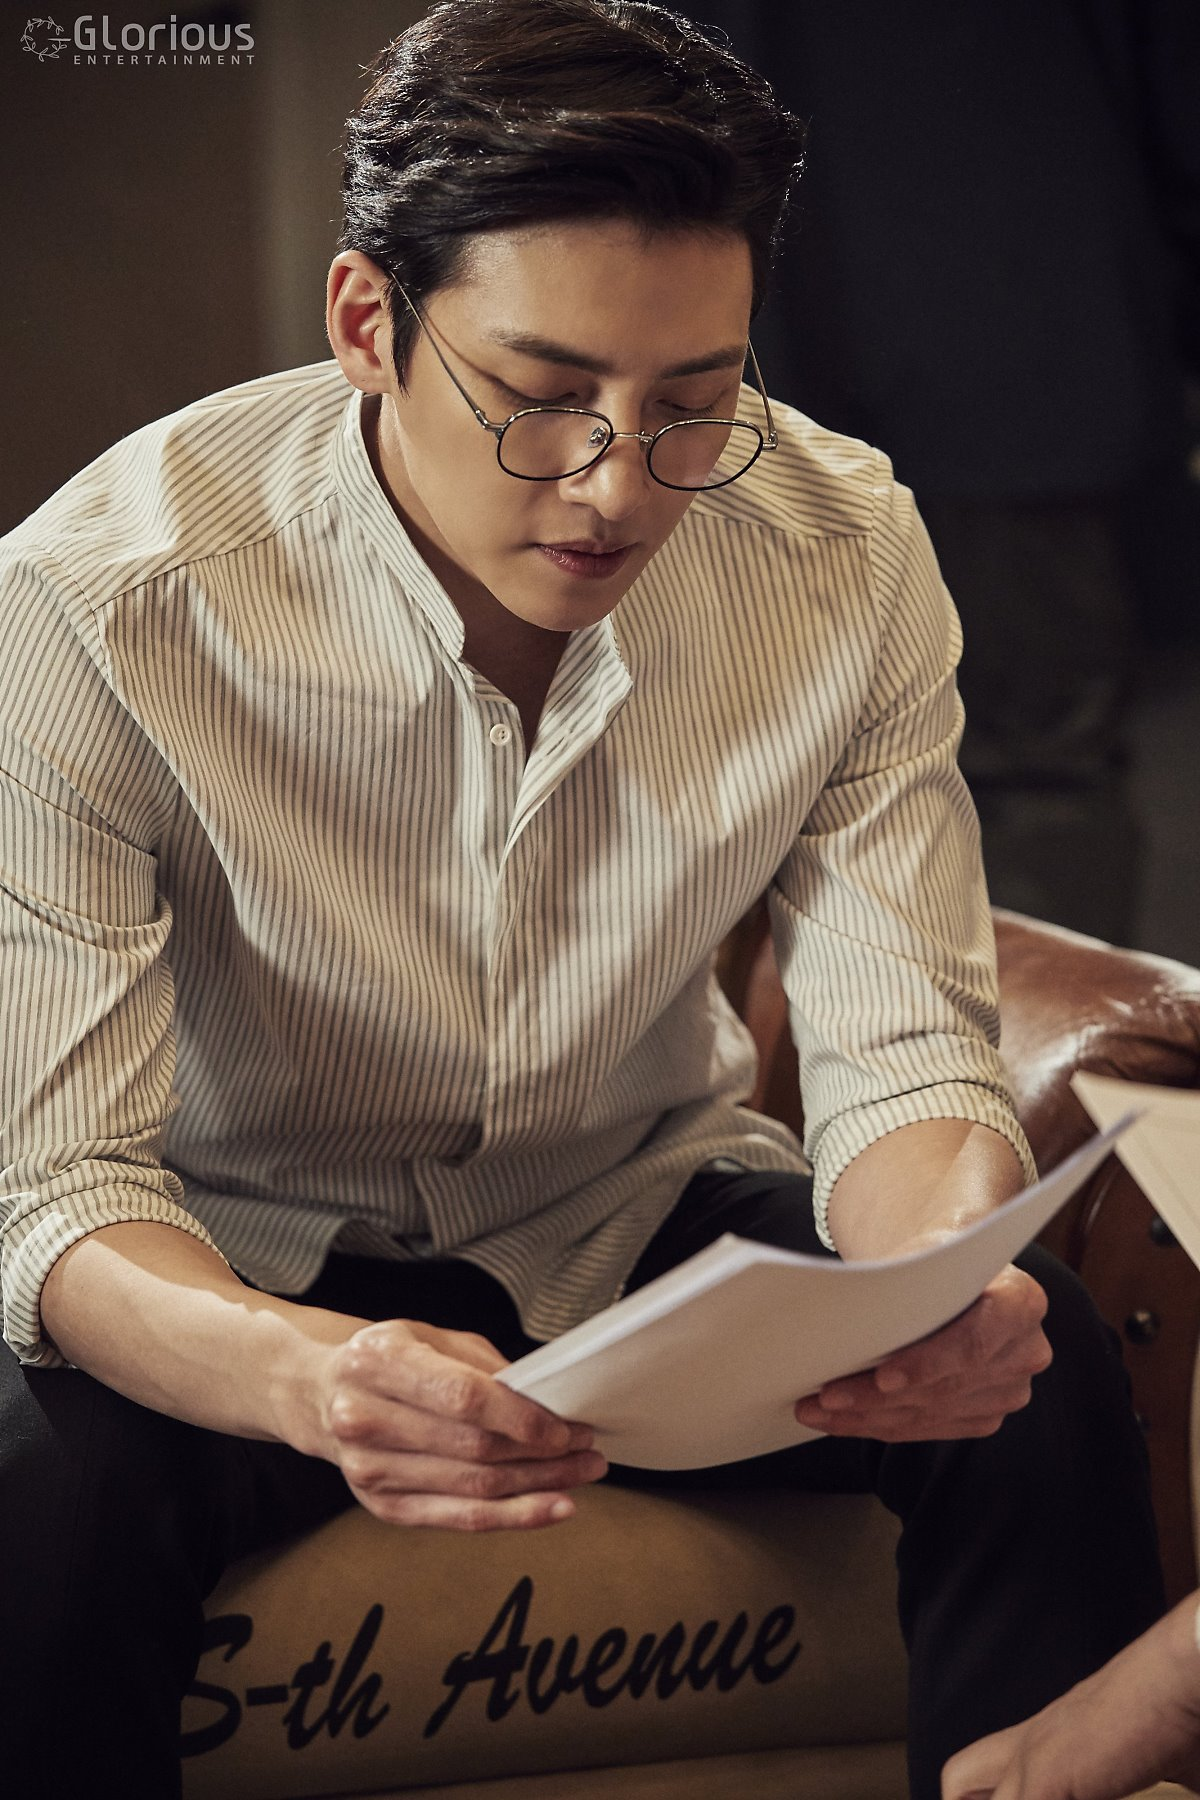 [Drama] Even more behind-scenes photos of Ji Chang Wook in ...